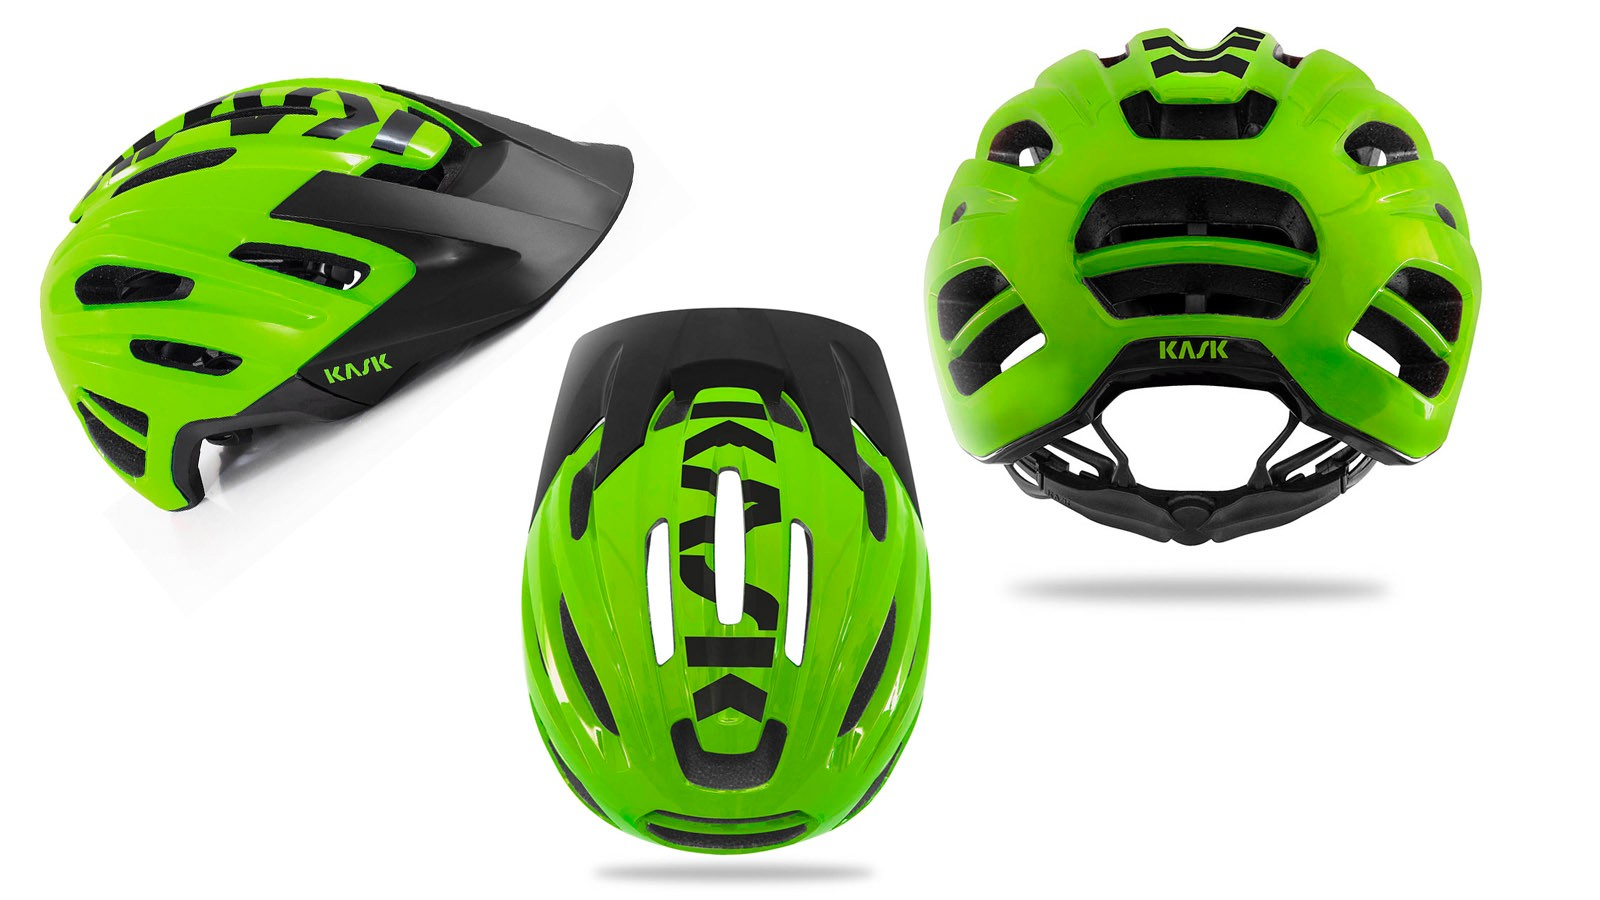 The Caipi appears to be the brand's new flagship off-road helmet